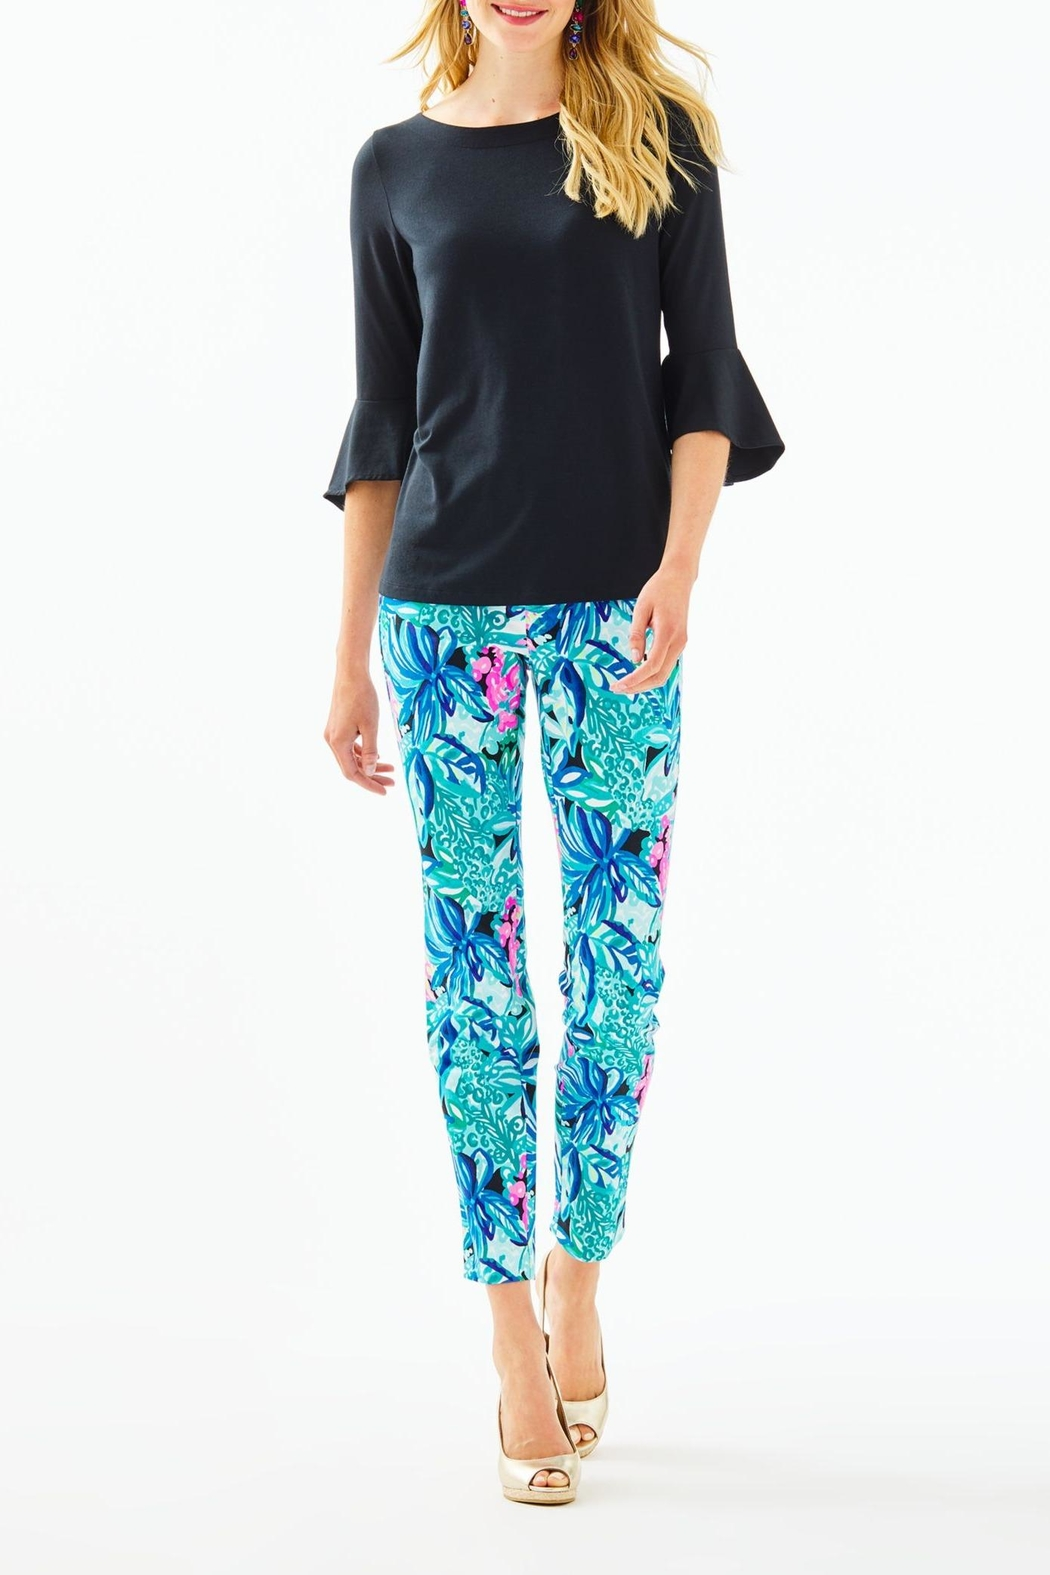 Lilly Pulitzer Kelly Skinny-Ankle Pant - Back Cropped Image